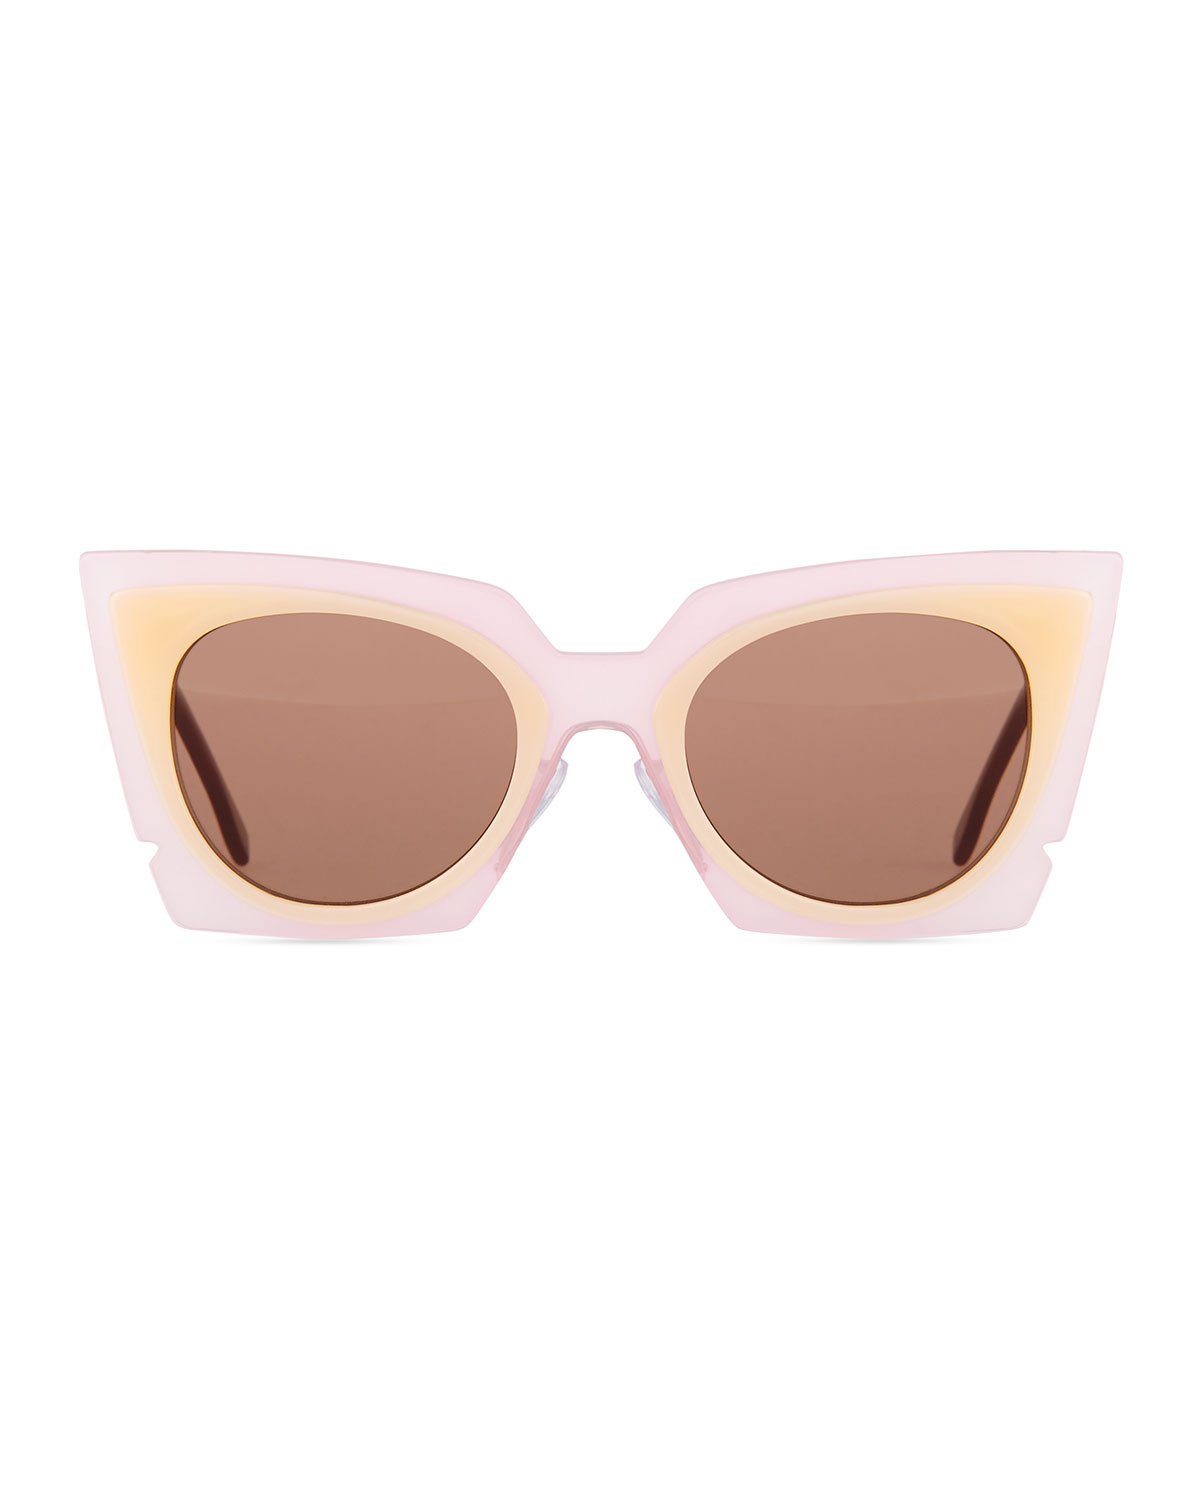 7ec3ccd25e Gallery. Previously sold at  Bergdorf Goodman · Women s Cat Eye Sunglasses  ...